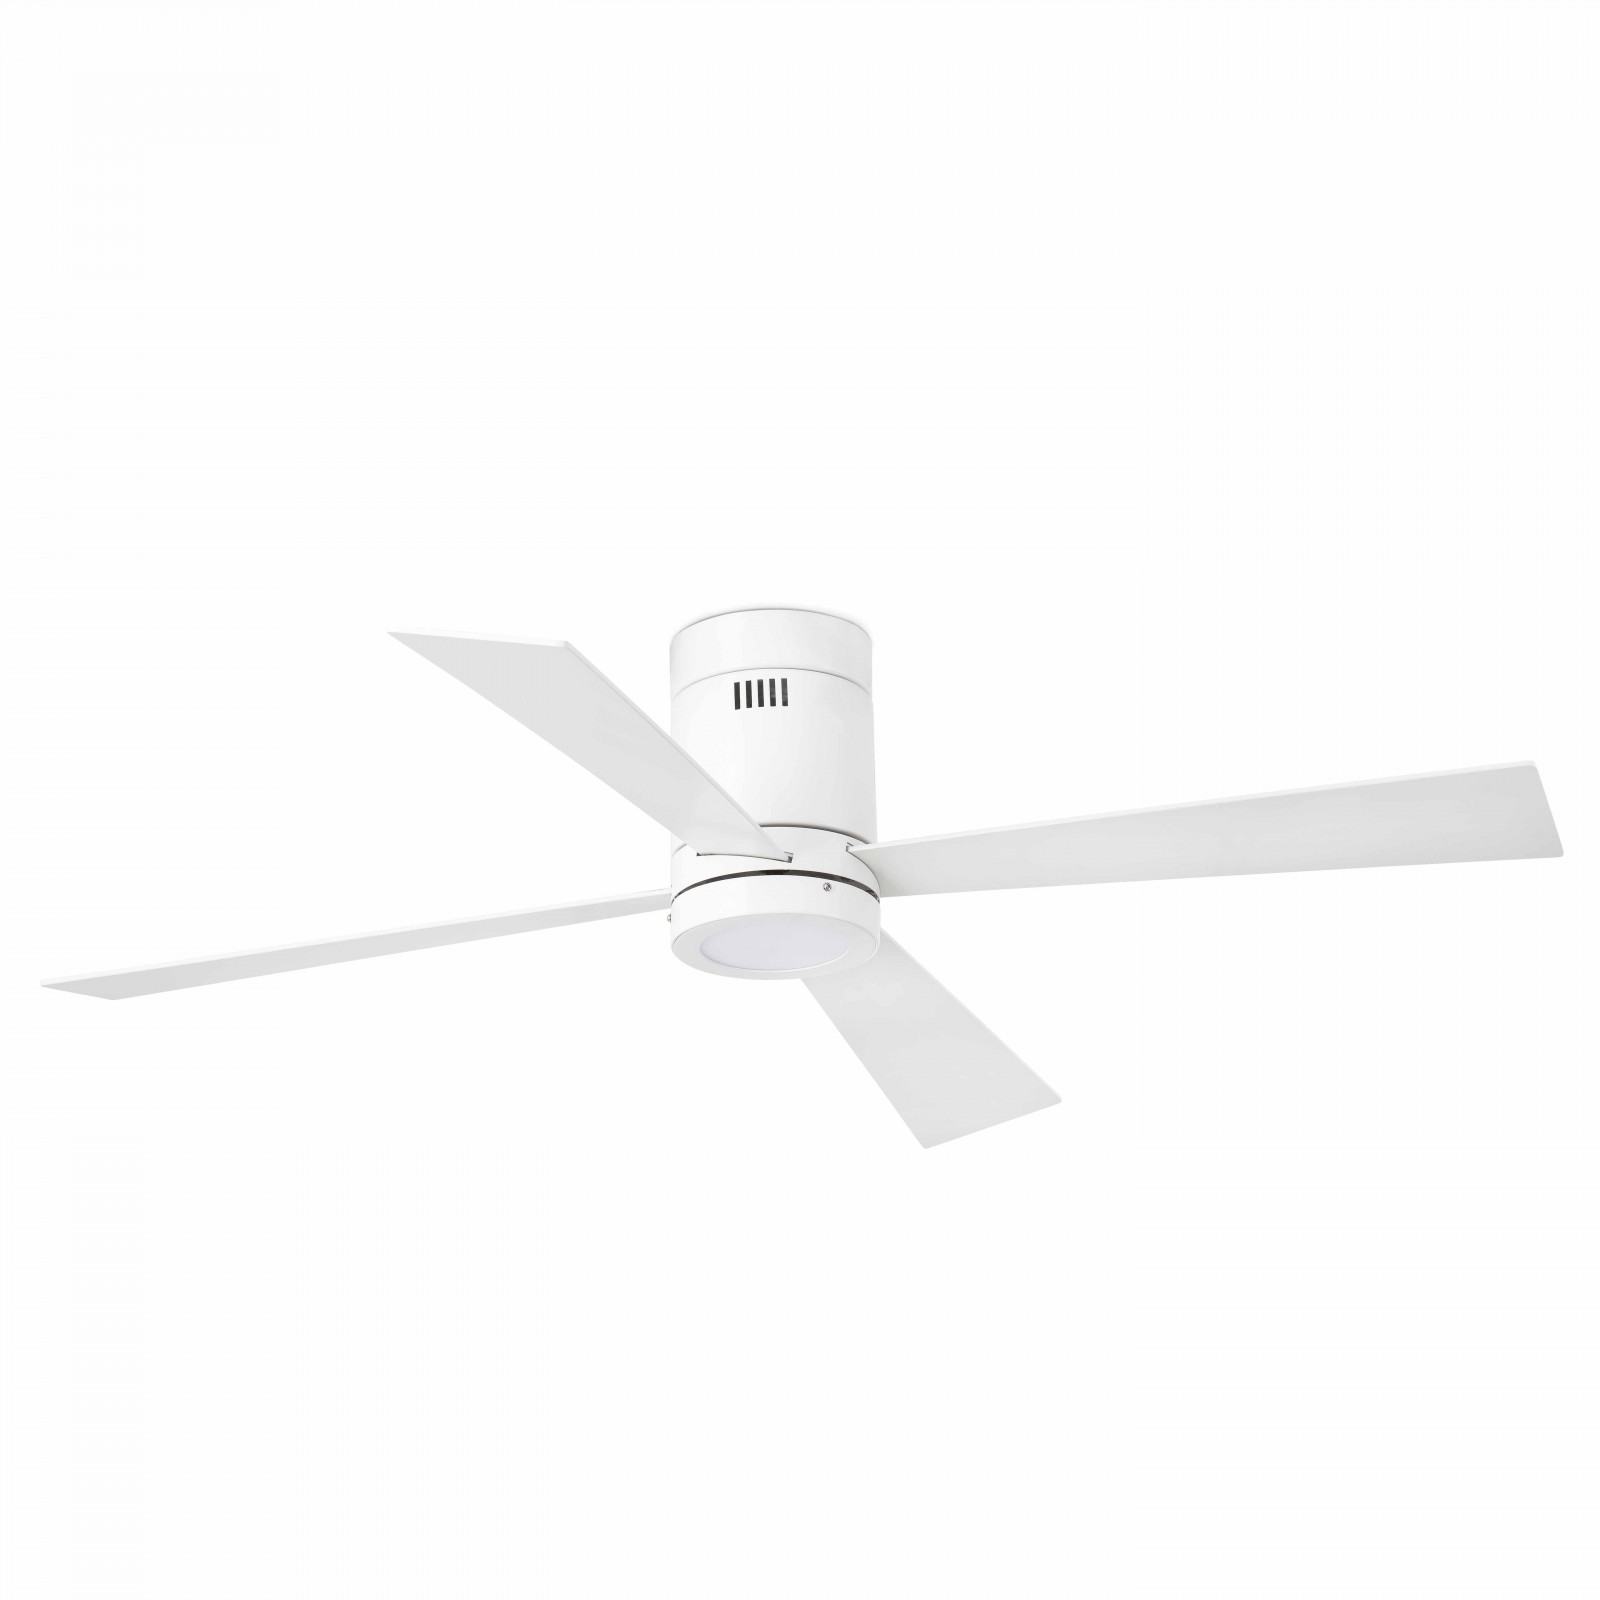 100 domestic ceiling fans haiku the world u0027s most effic